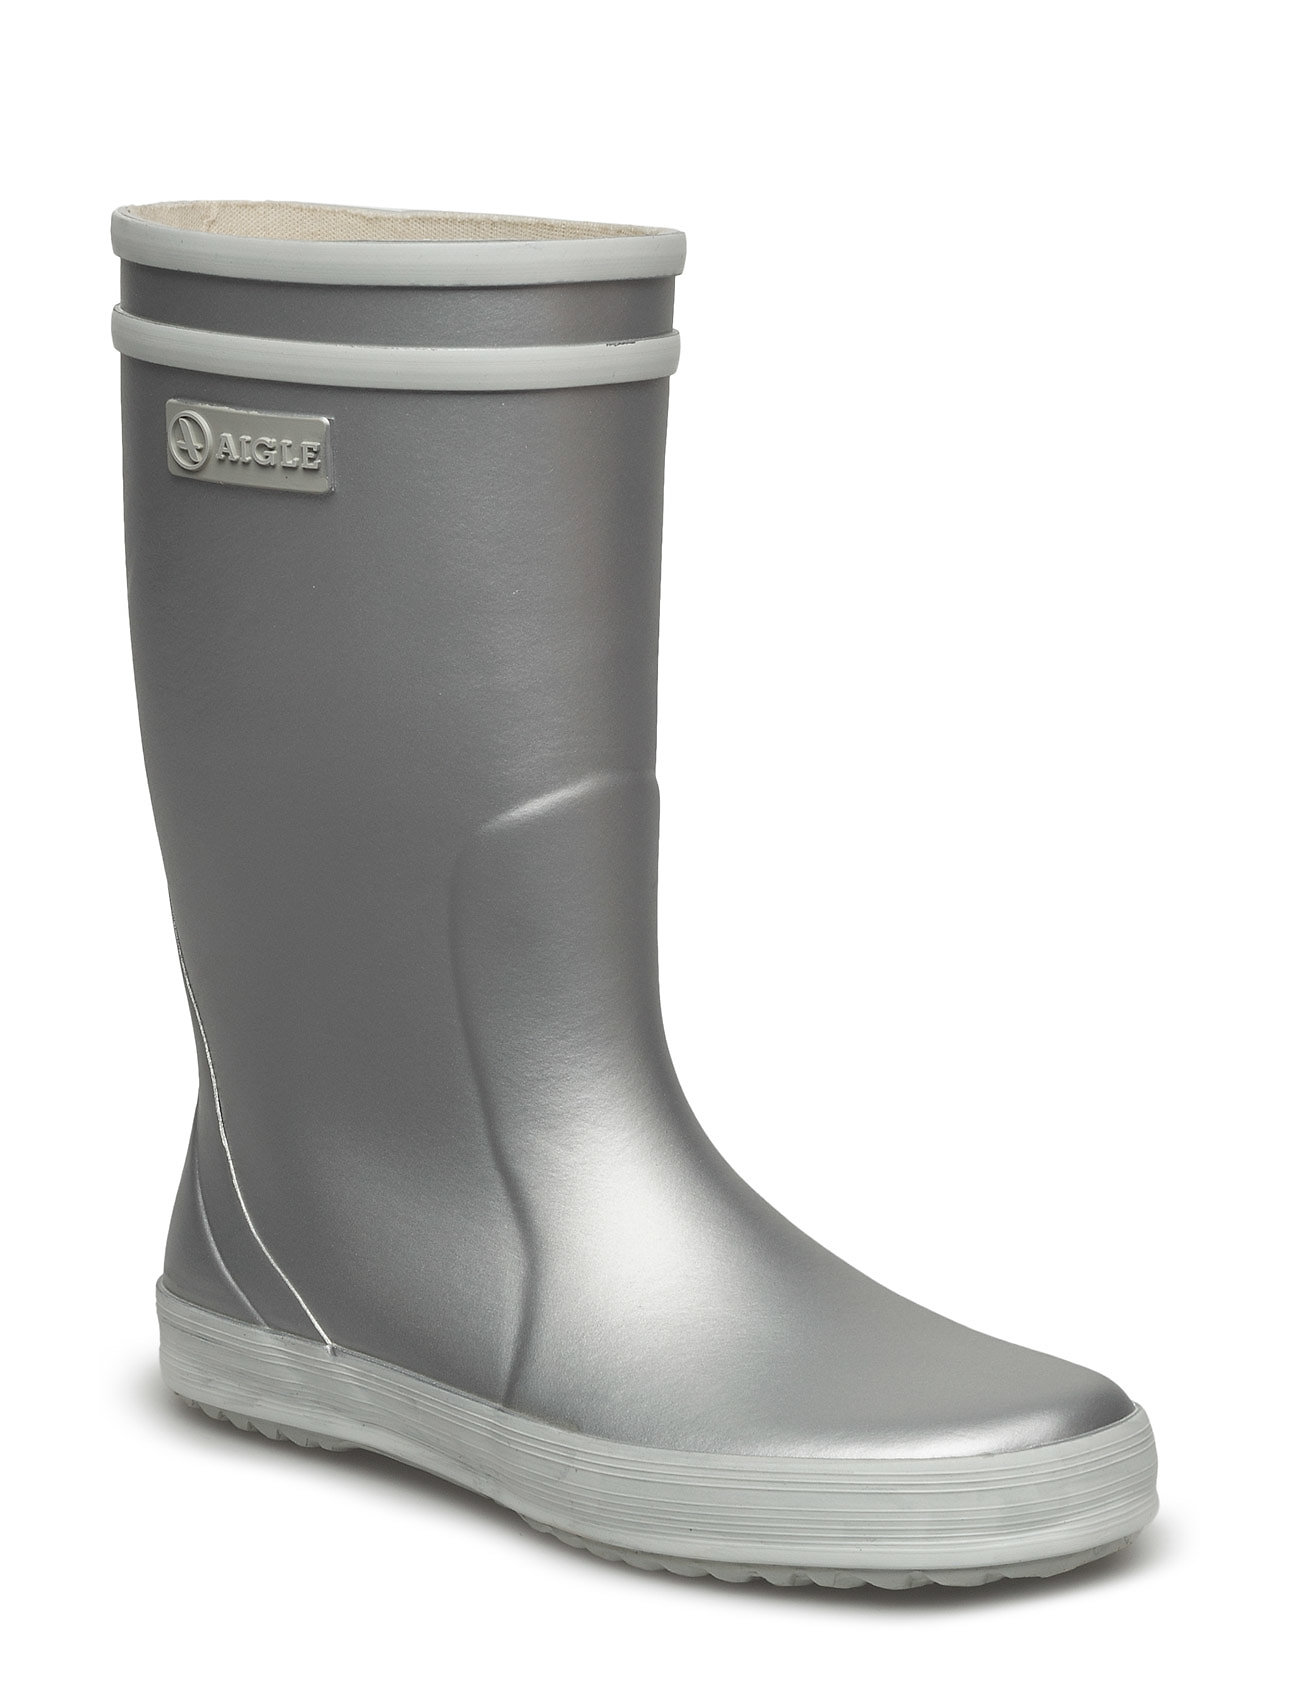 Lolly Pop Silver Aigle Wellies